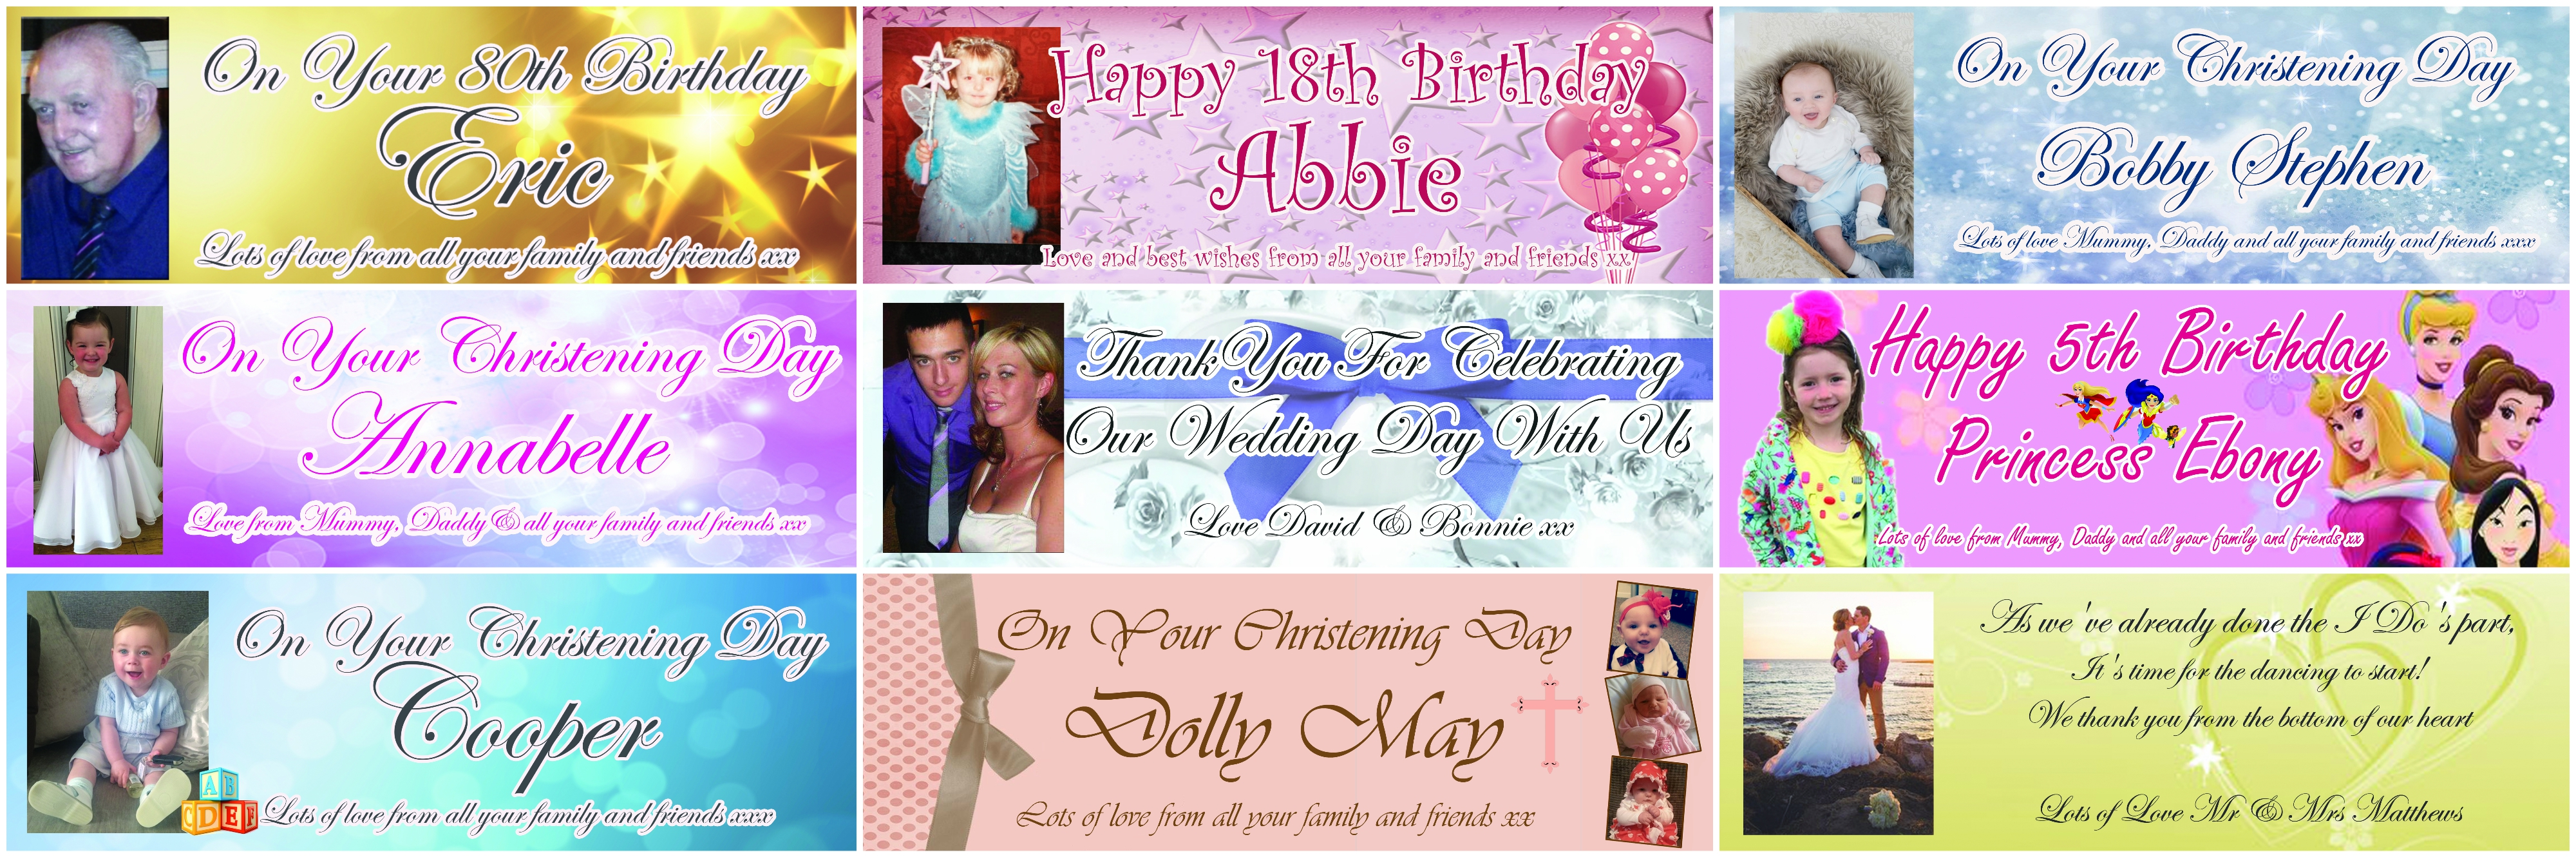 personalised photo birthday banners ; banner-collage-1